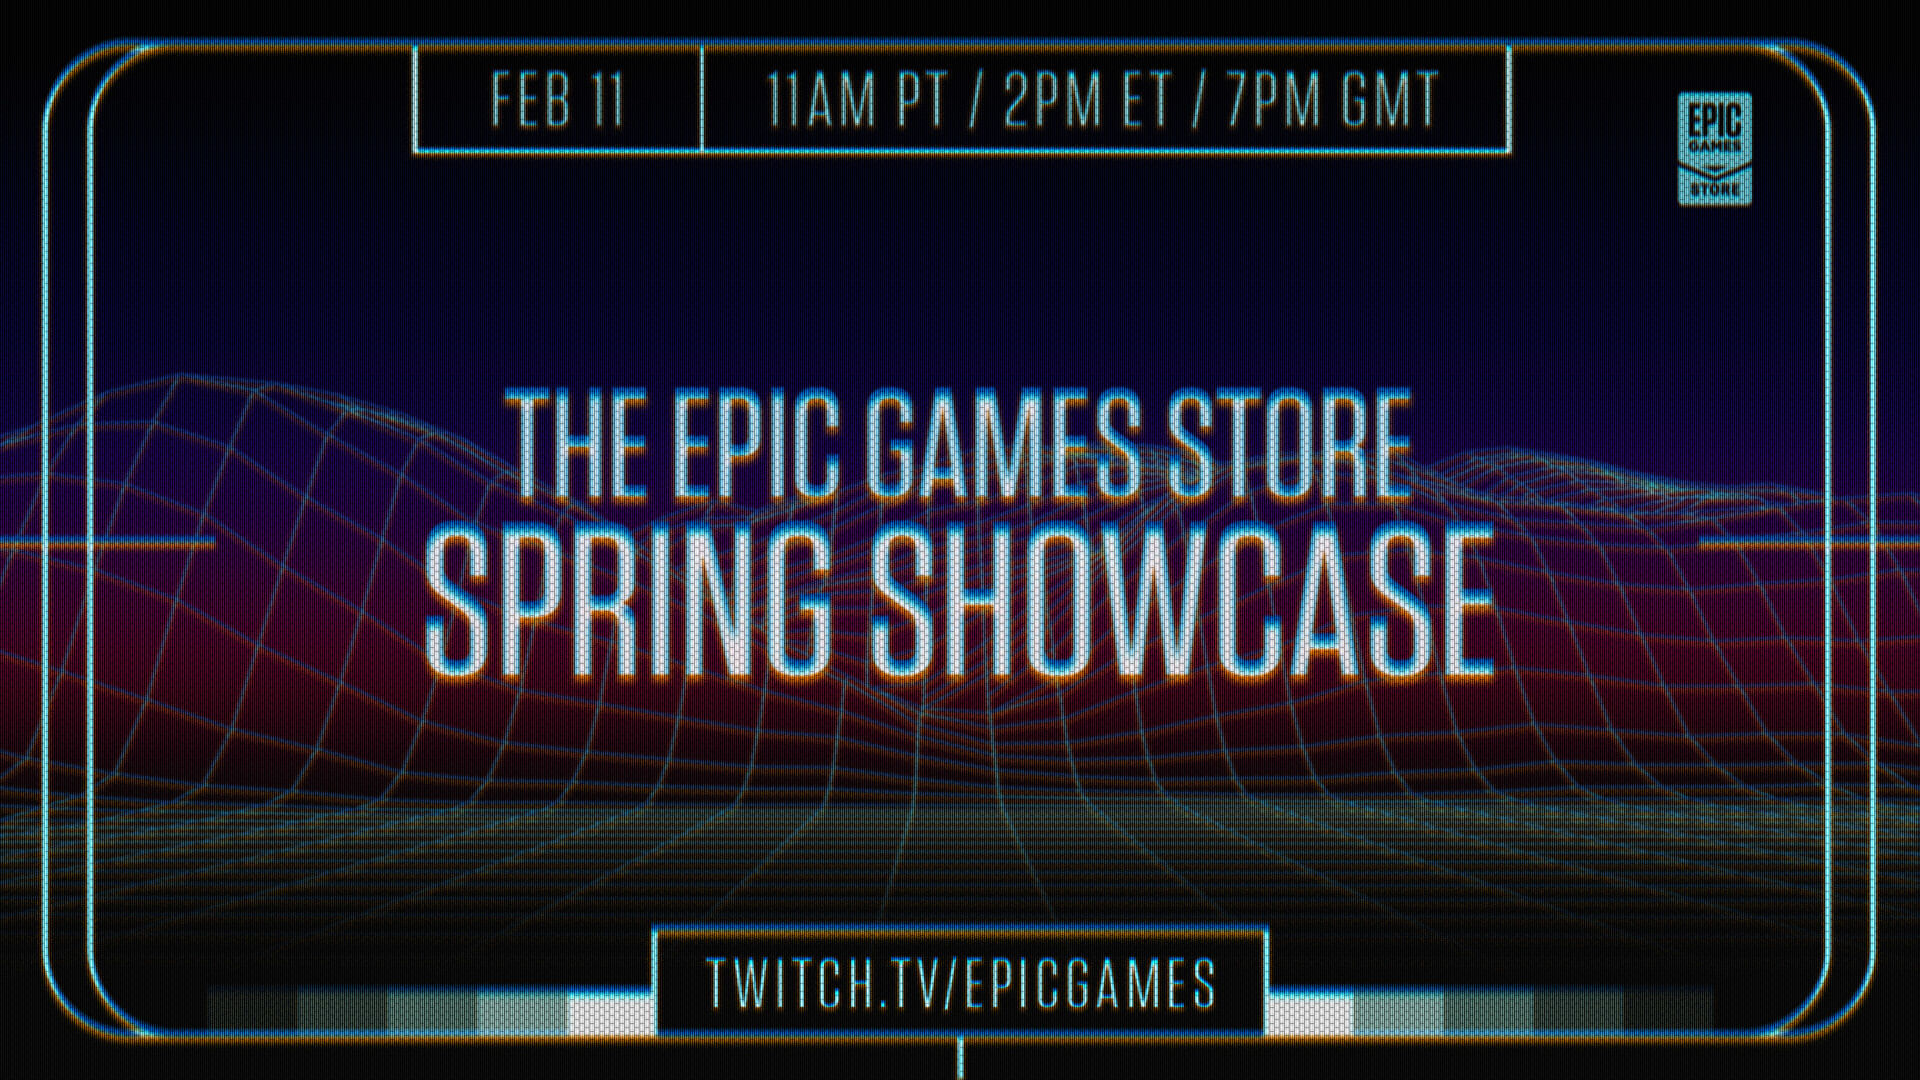 Watch the Epic Games Store showcase here today for new announcements